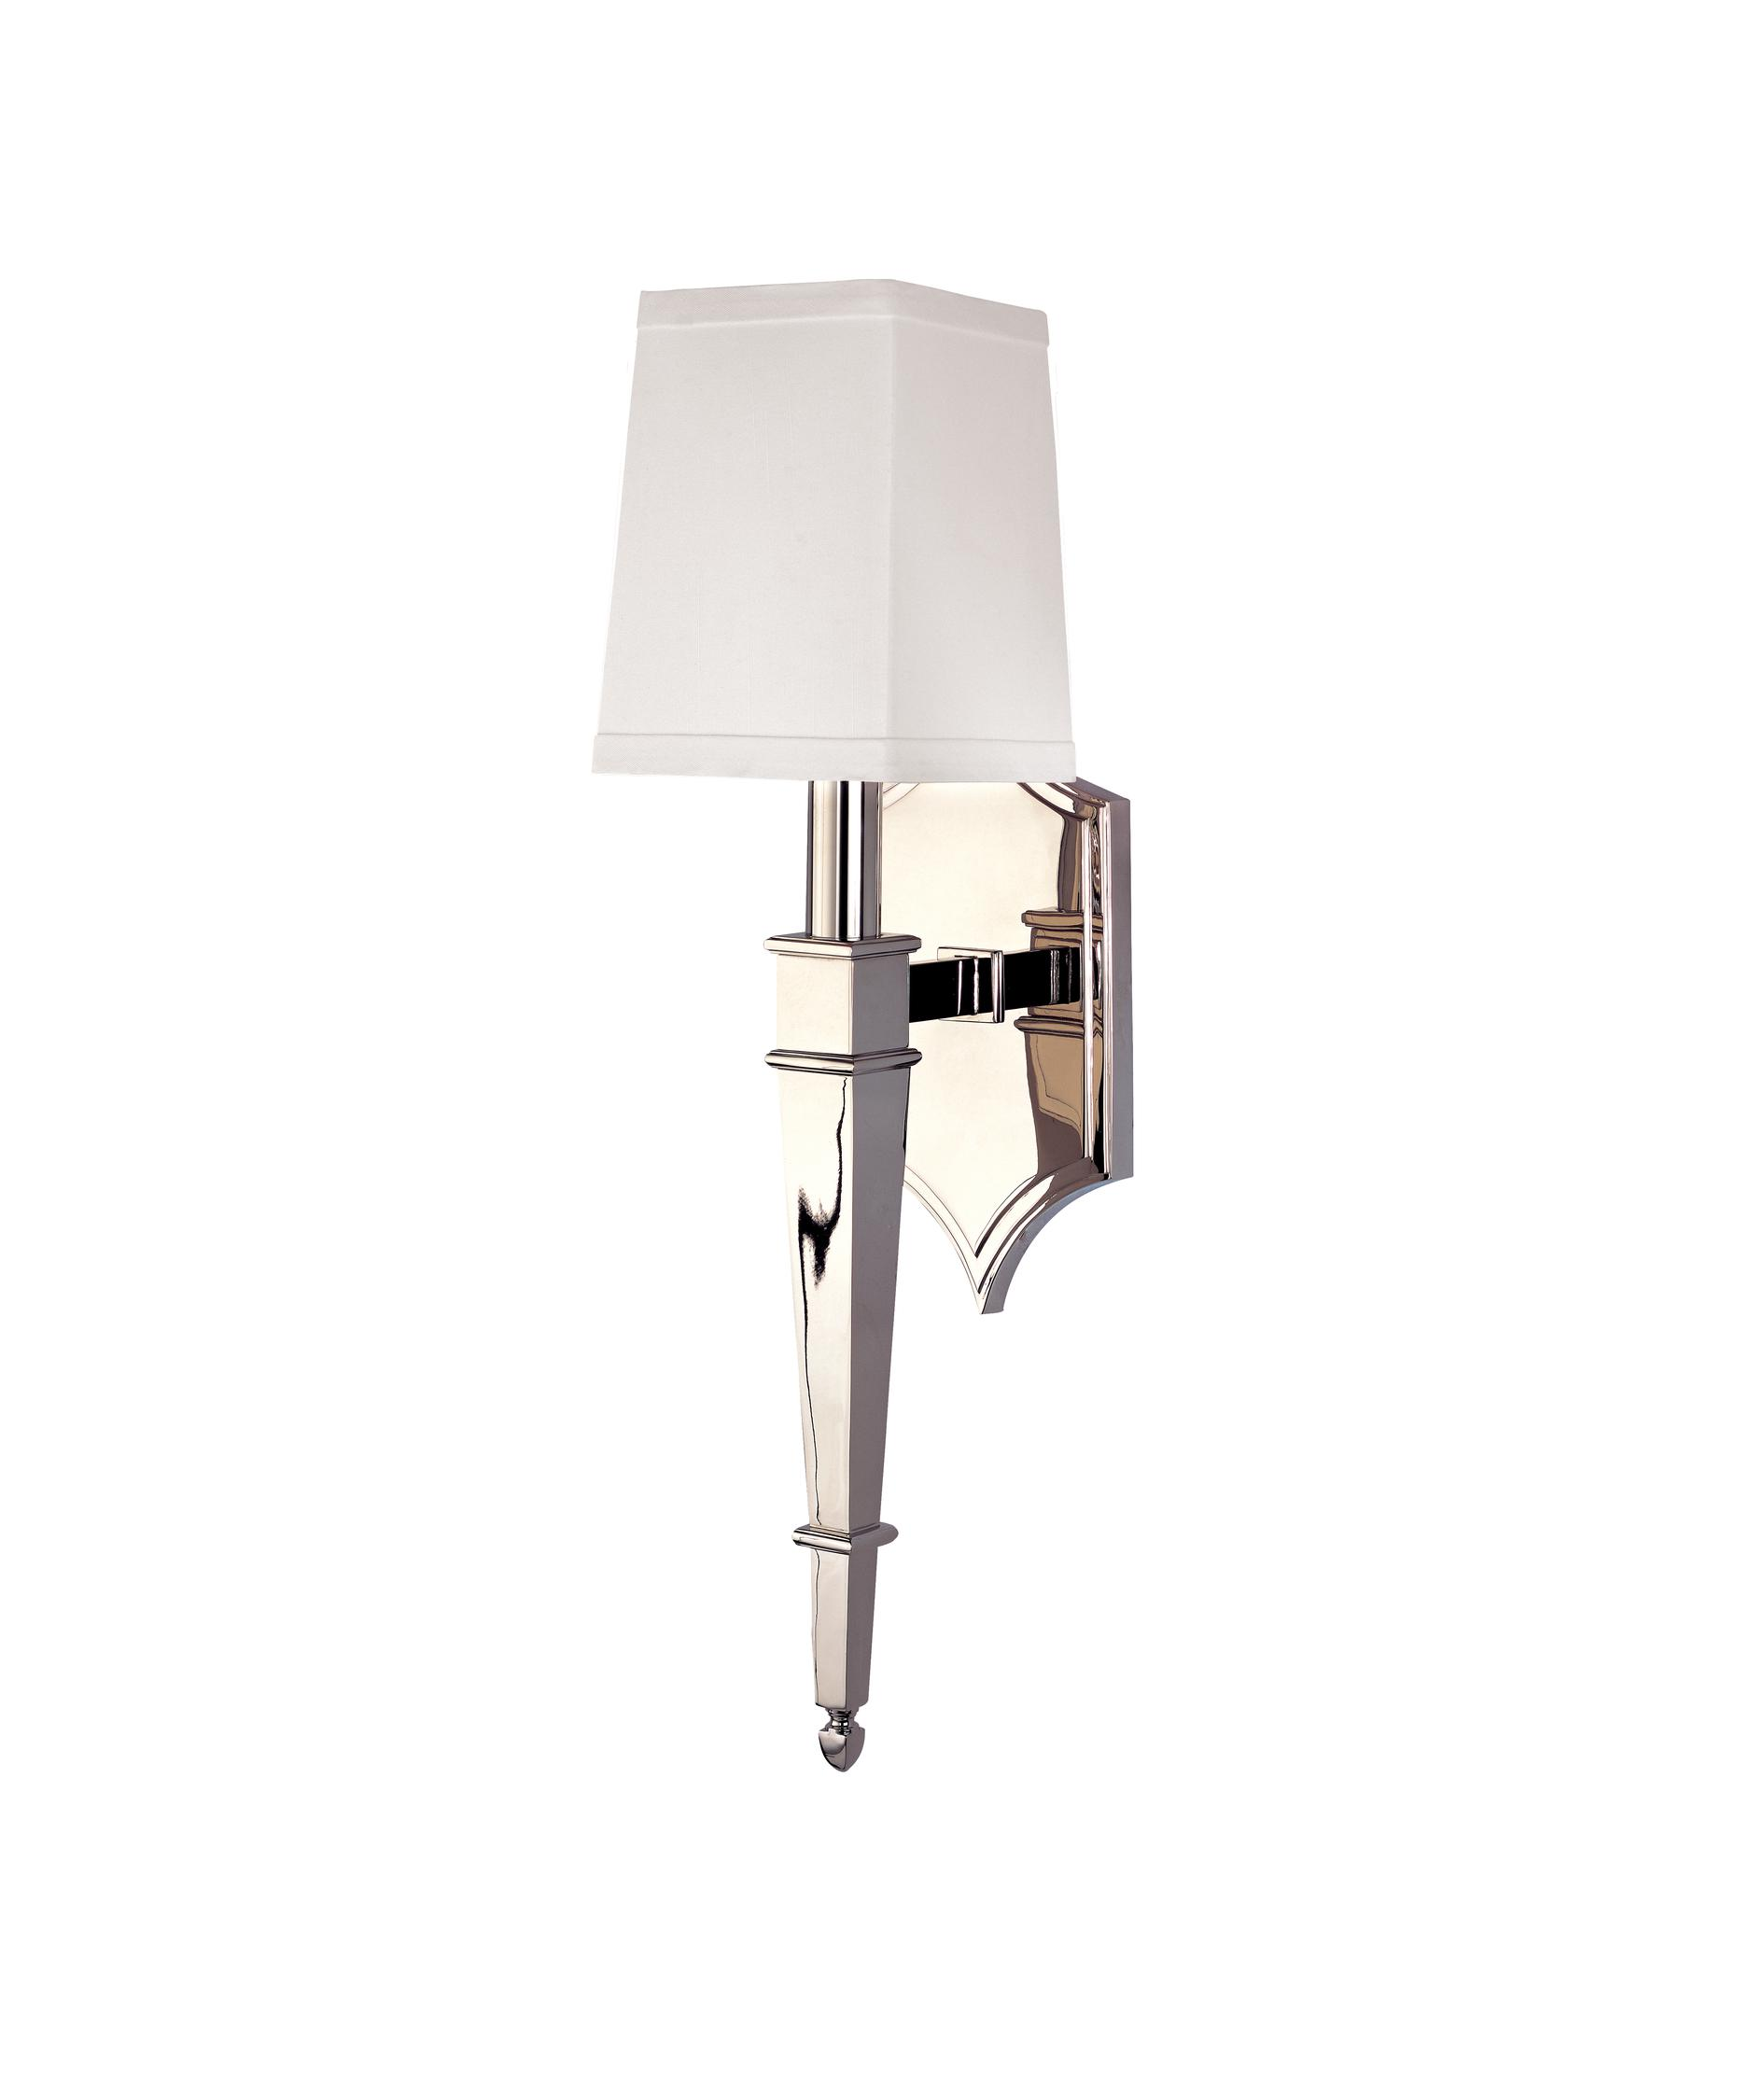 Bathroom Lights Norwich hudson valley 741 norwich 5 inch wide wall sconce | capitol